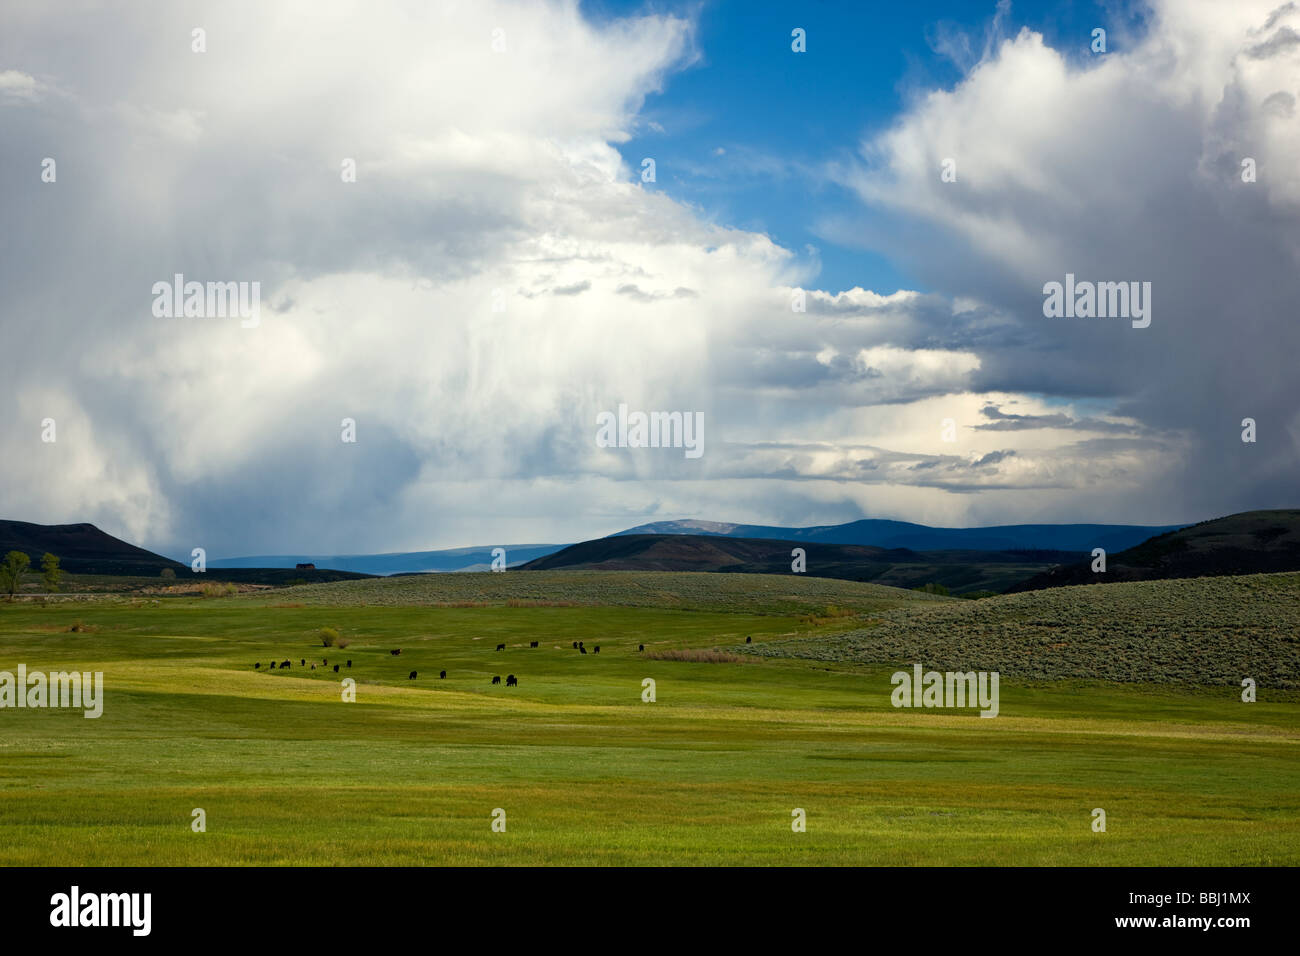 Springtime view southeast of ranchland towards the Sawatch Range of mountains and clearing stormy skies taken from - Stock Image